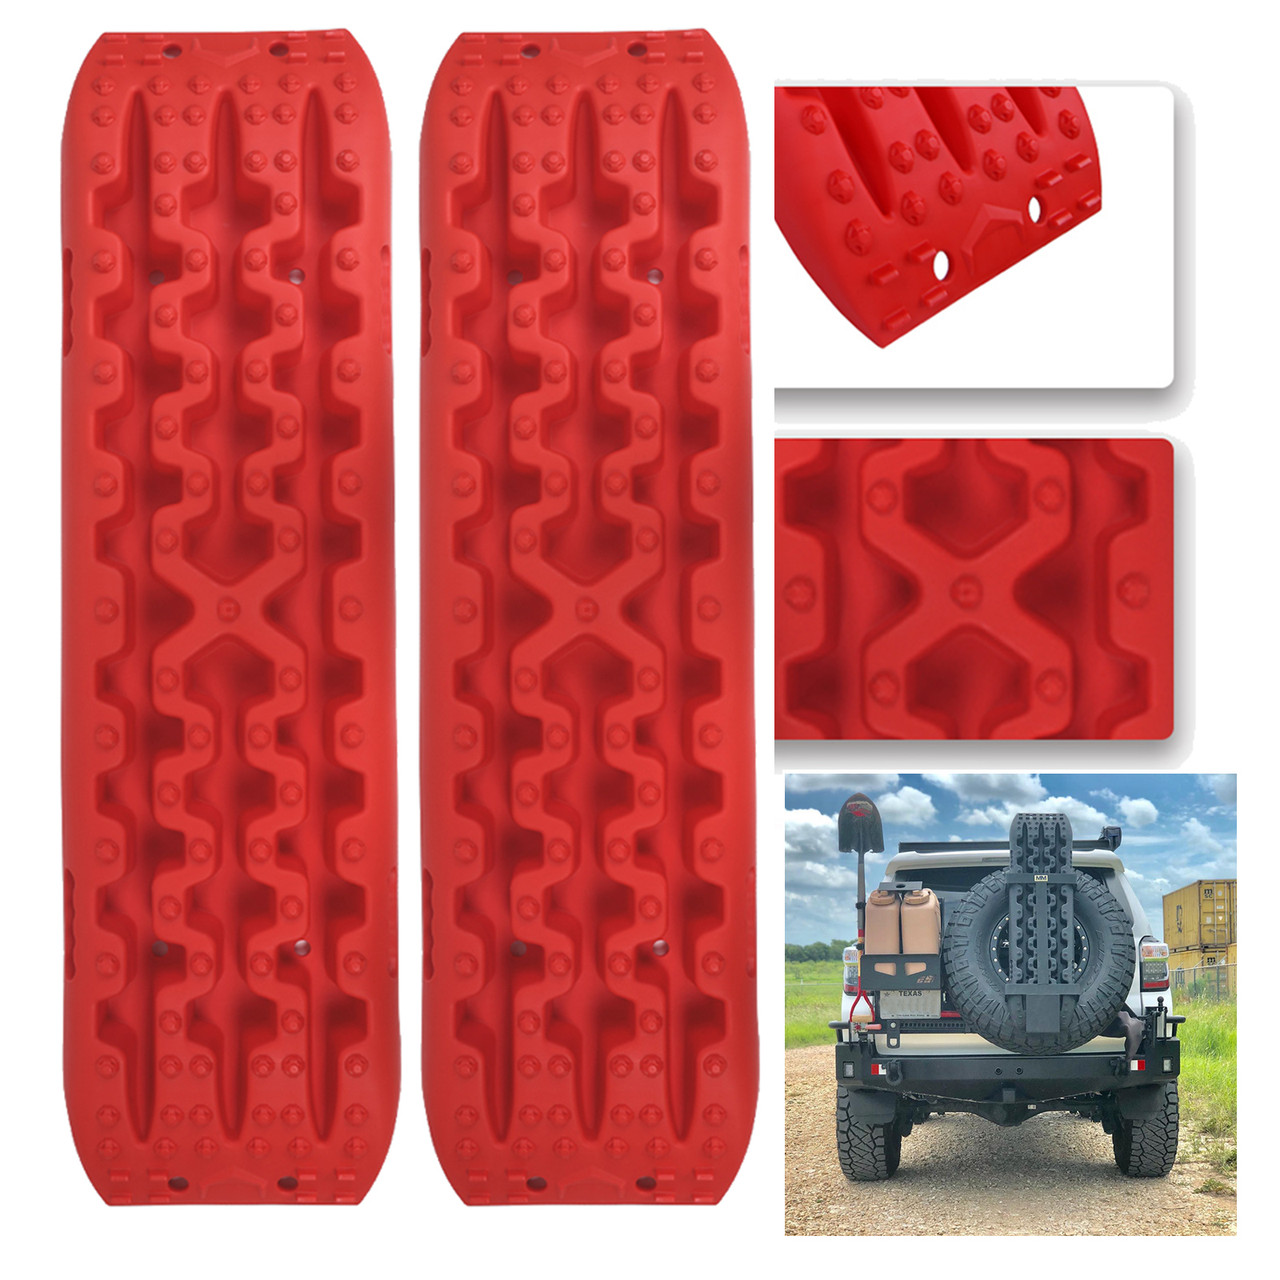 4GEN Recovery Tracks Traction Sand Snow Mud Track Tire Ladder 4WD Red